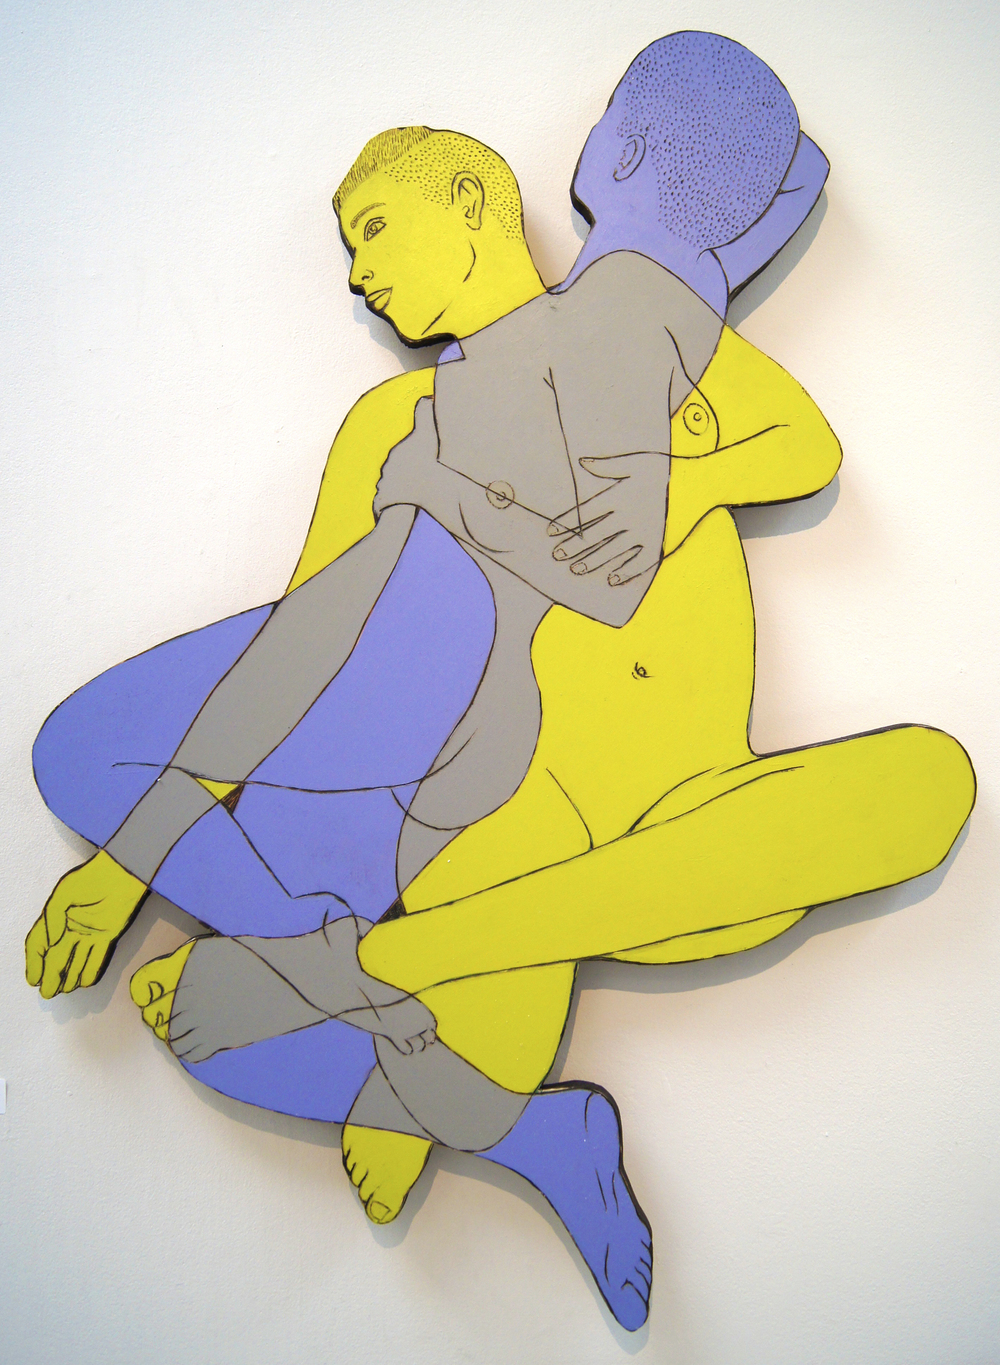 rose jaffe // wood cut out piece from her recent series women in color